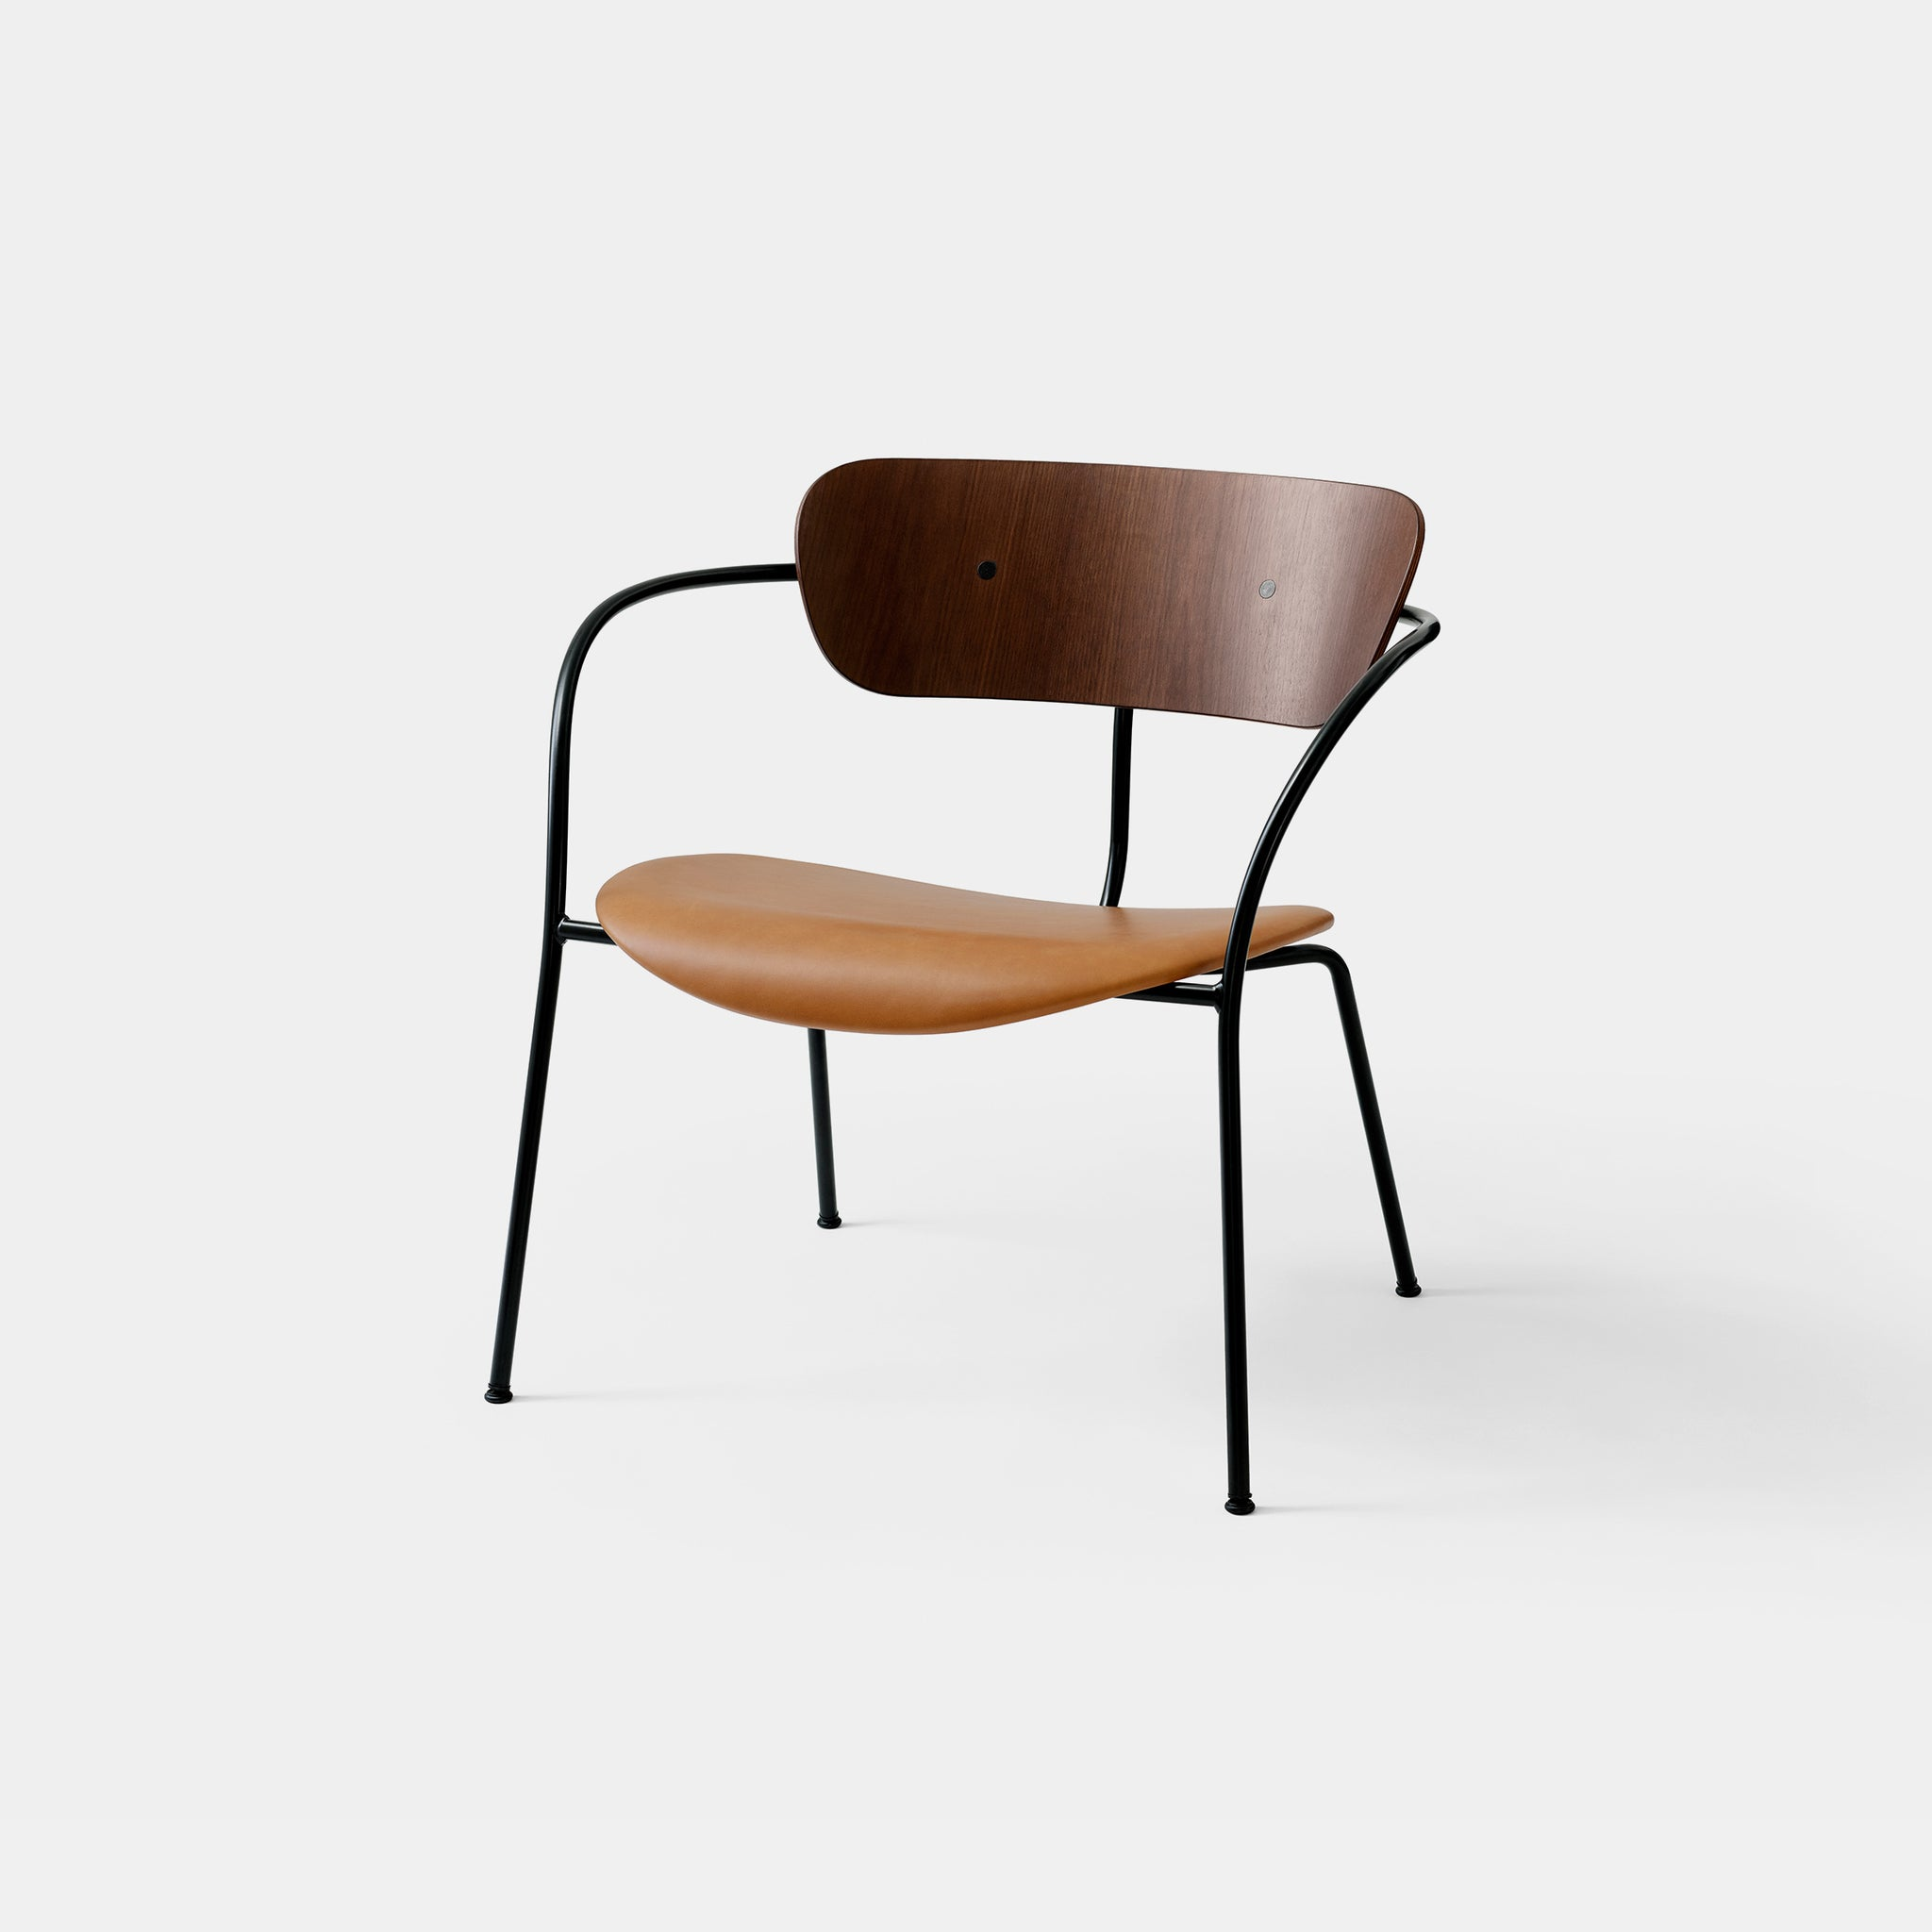 Miraculous Pavilion Armchair Av6 Walnut Tradition Download Free Architecture Designs Licukmadebymaigaardcom